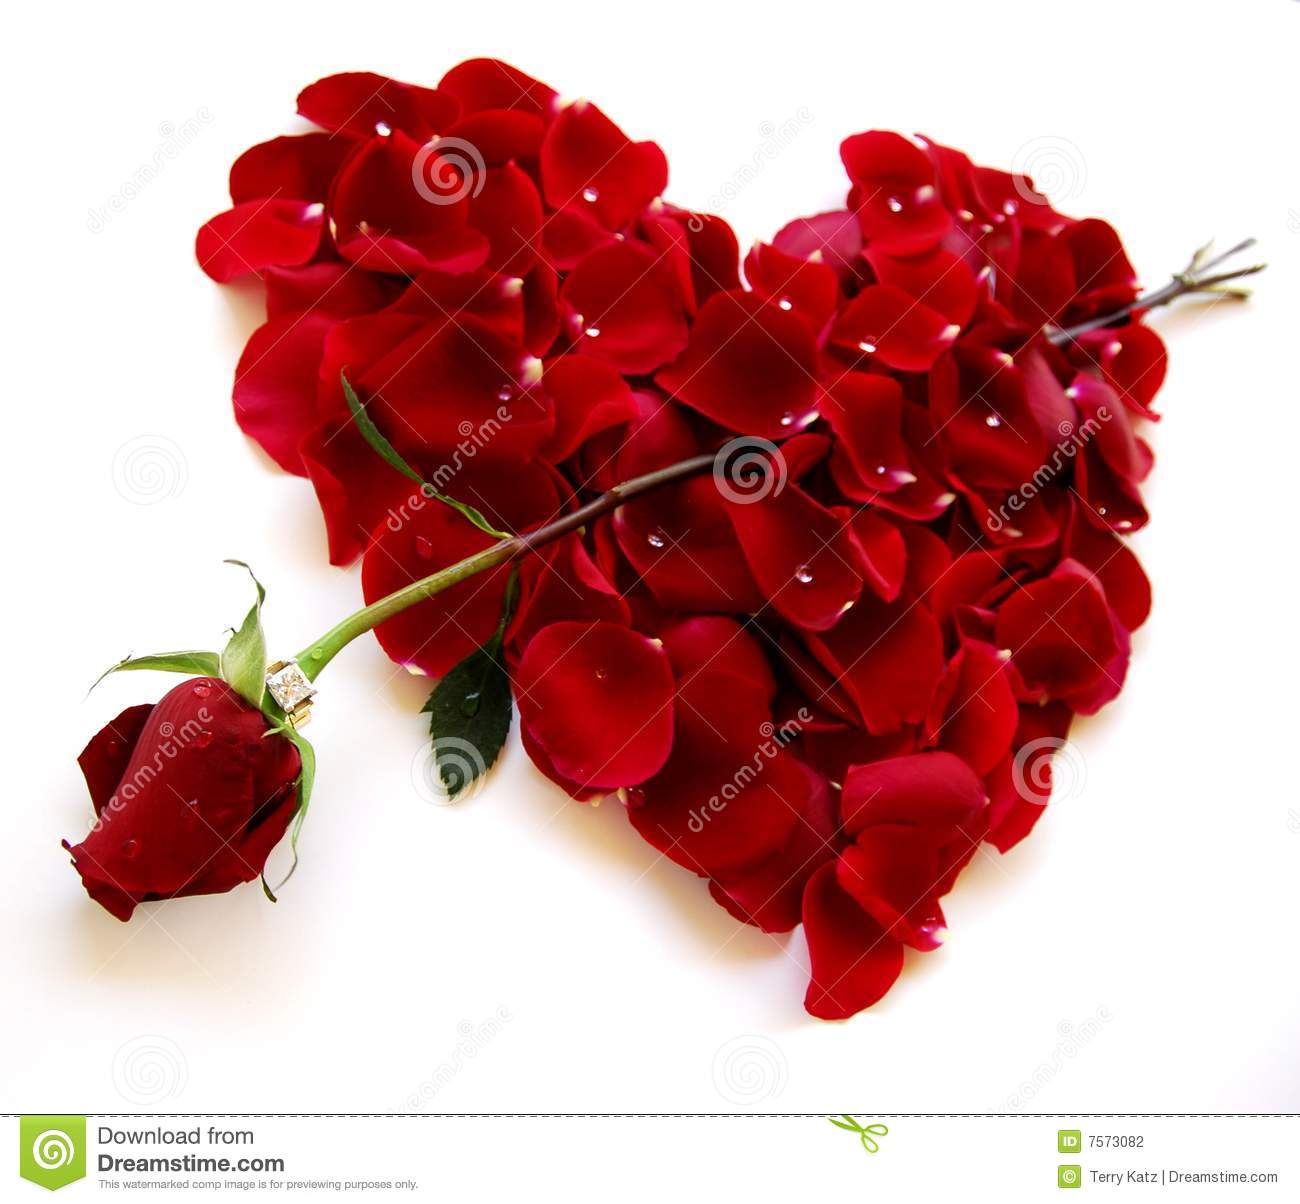 Valentines Day Cupid Stock Photos, Images, & Pictures - 1,862 Images